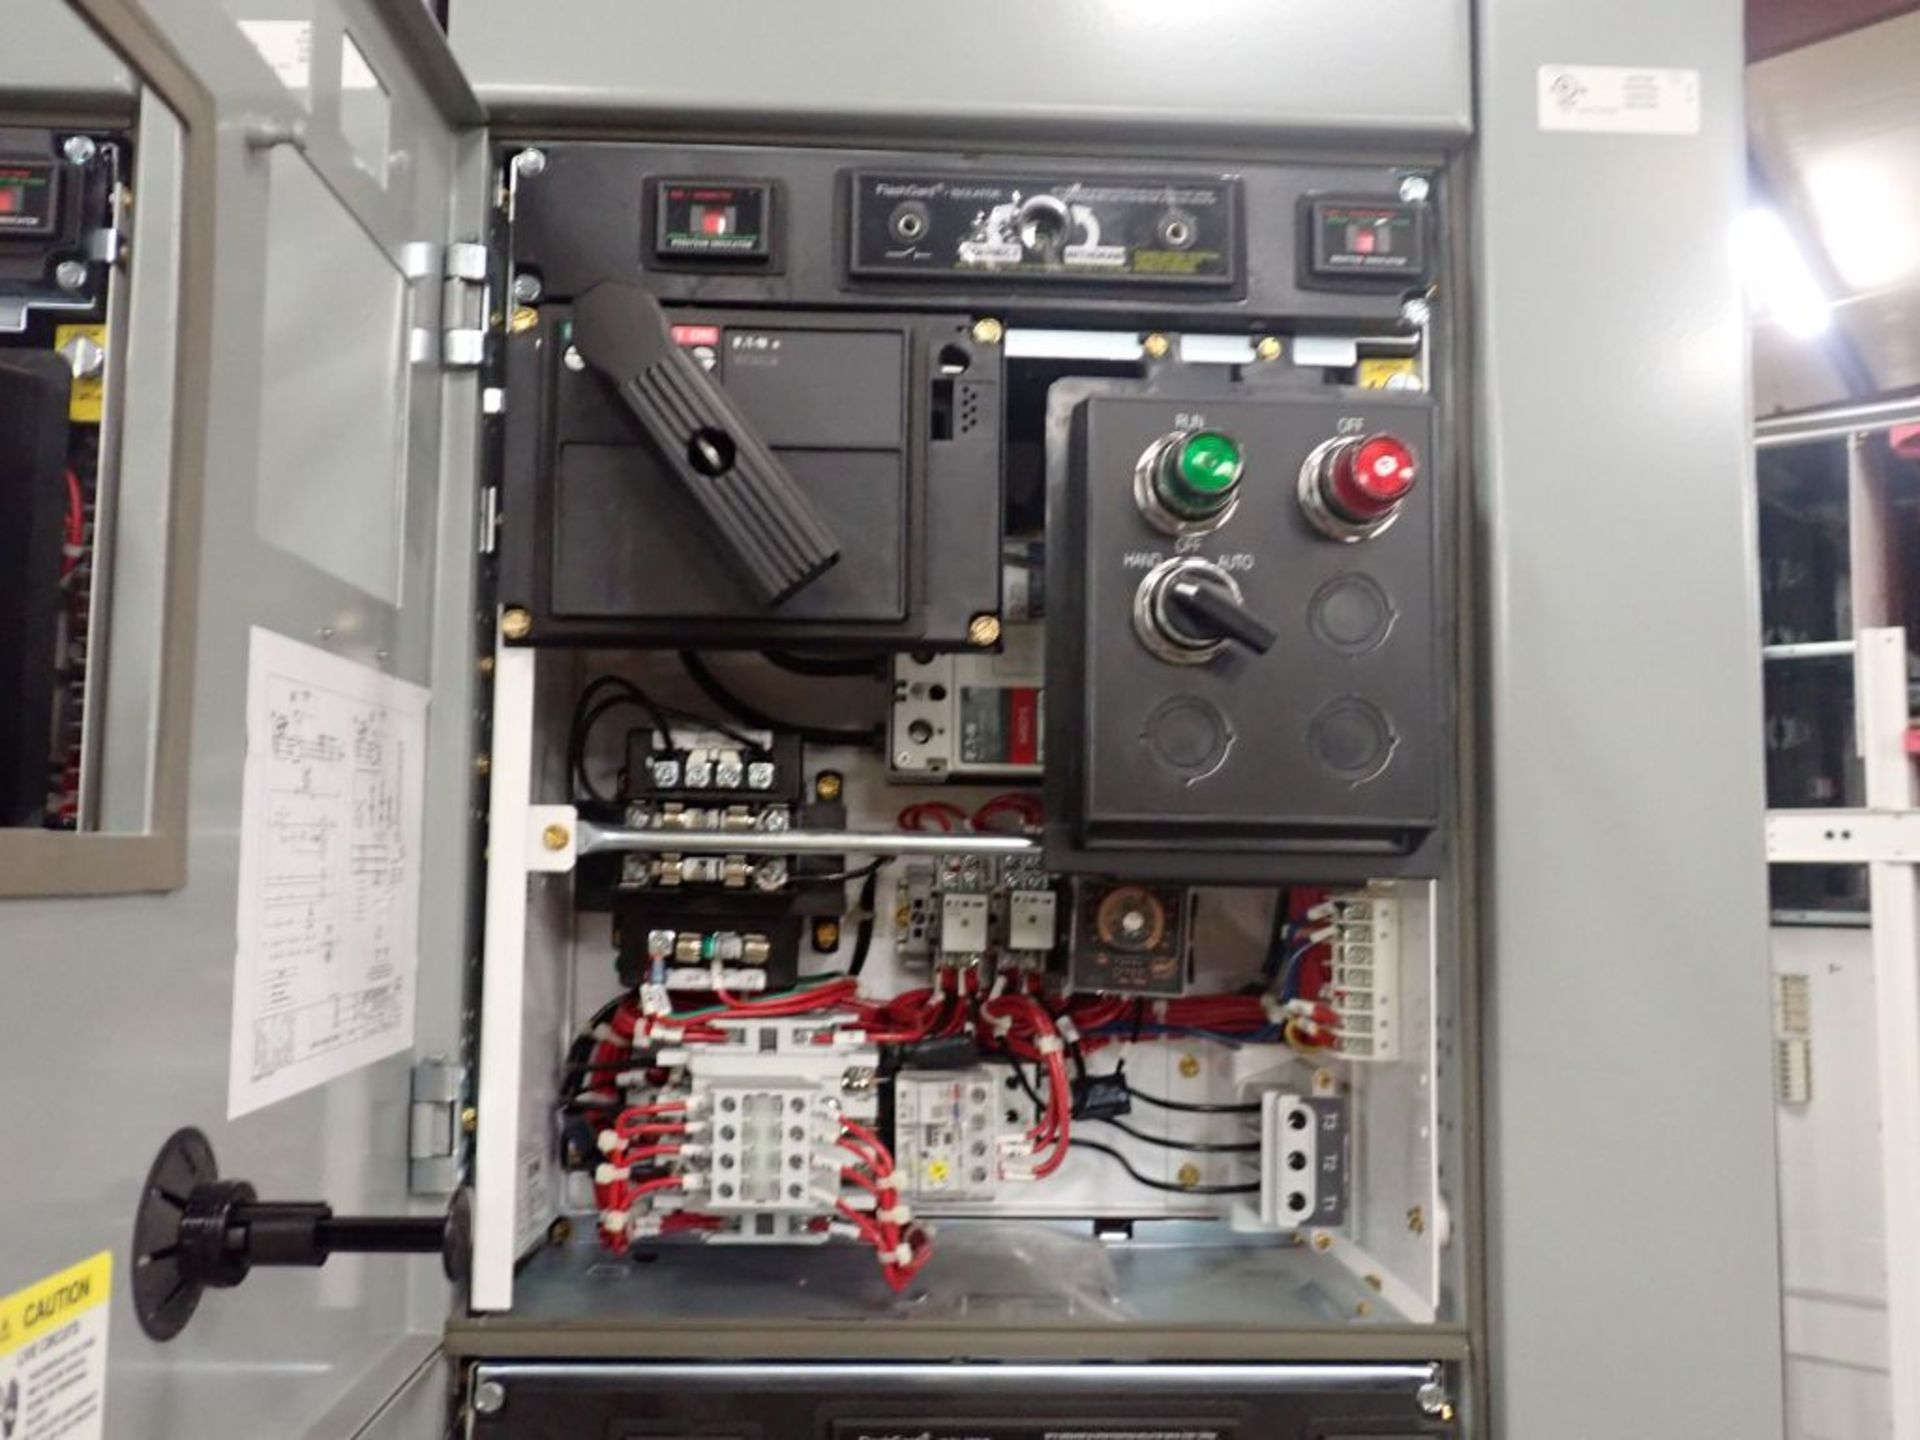 Eaton Freedom 2100 Series Motor Control Center   (2) F206-15A-10HP; (2) SVX900-50A, with Eaton AF - Image 30 of 48